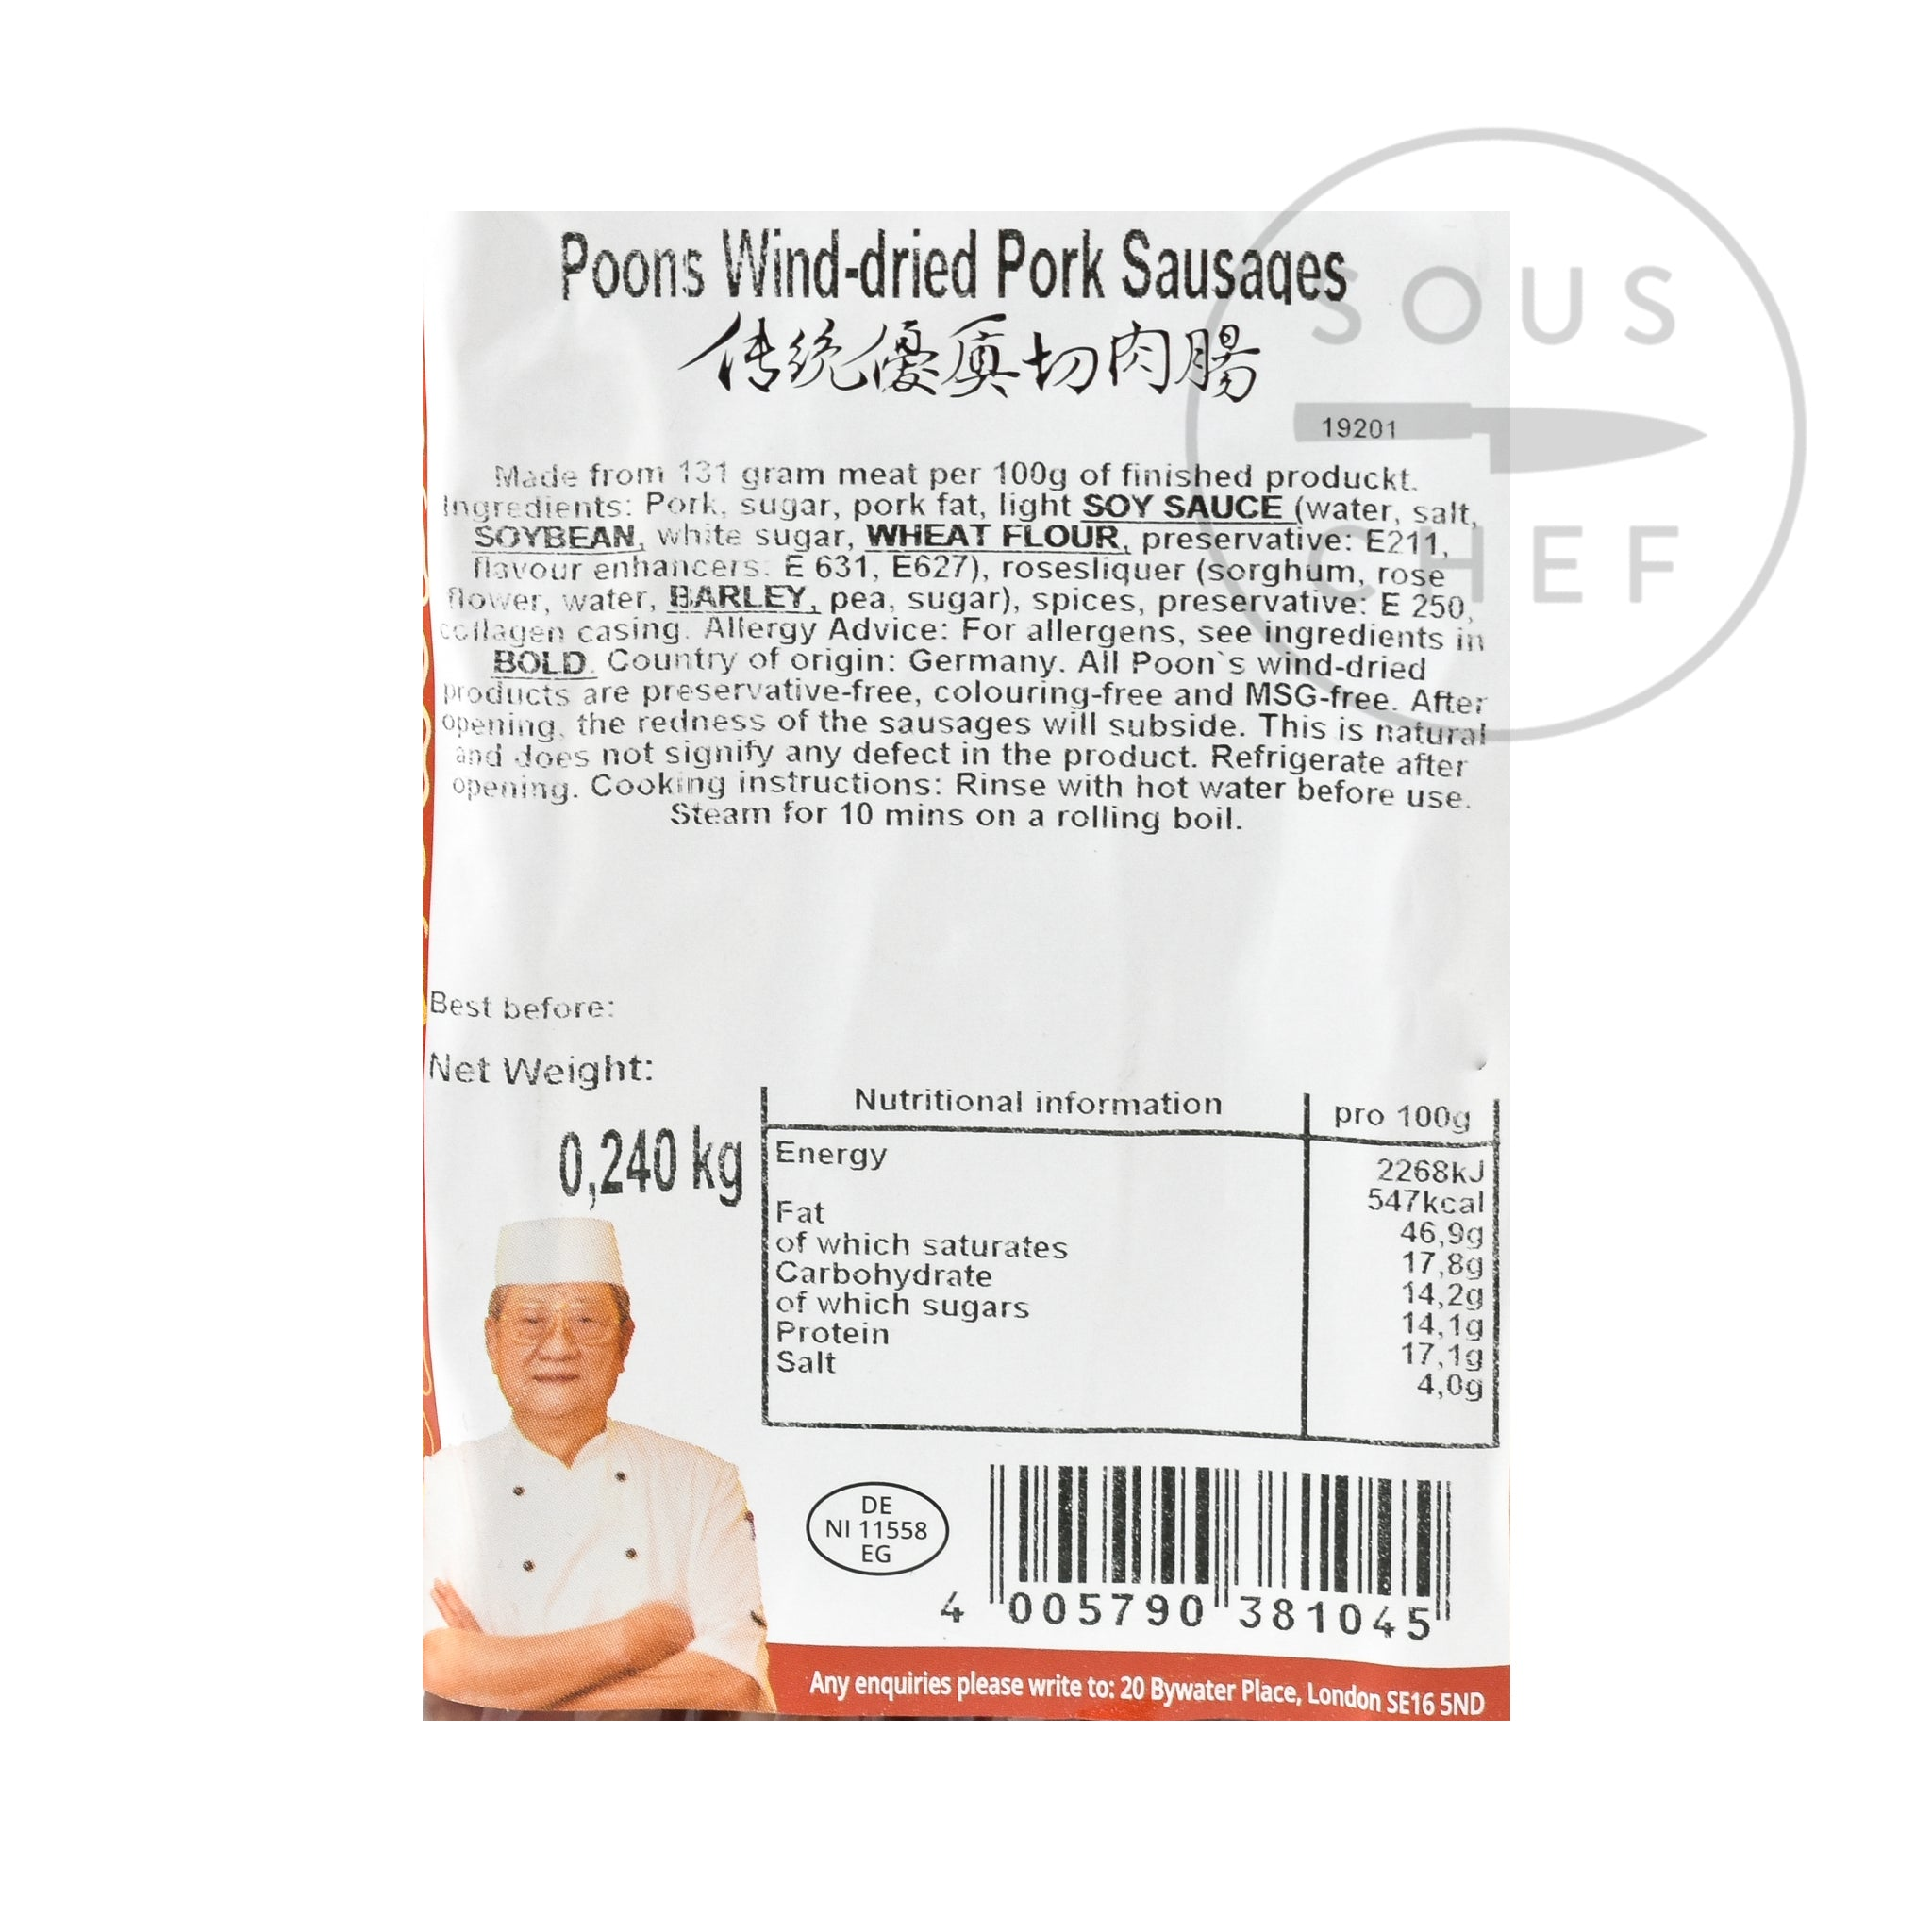 Poon's Chinese Wind-Dried Pork Sausage 240g nutritional information ingredients